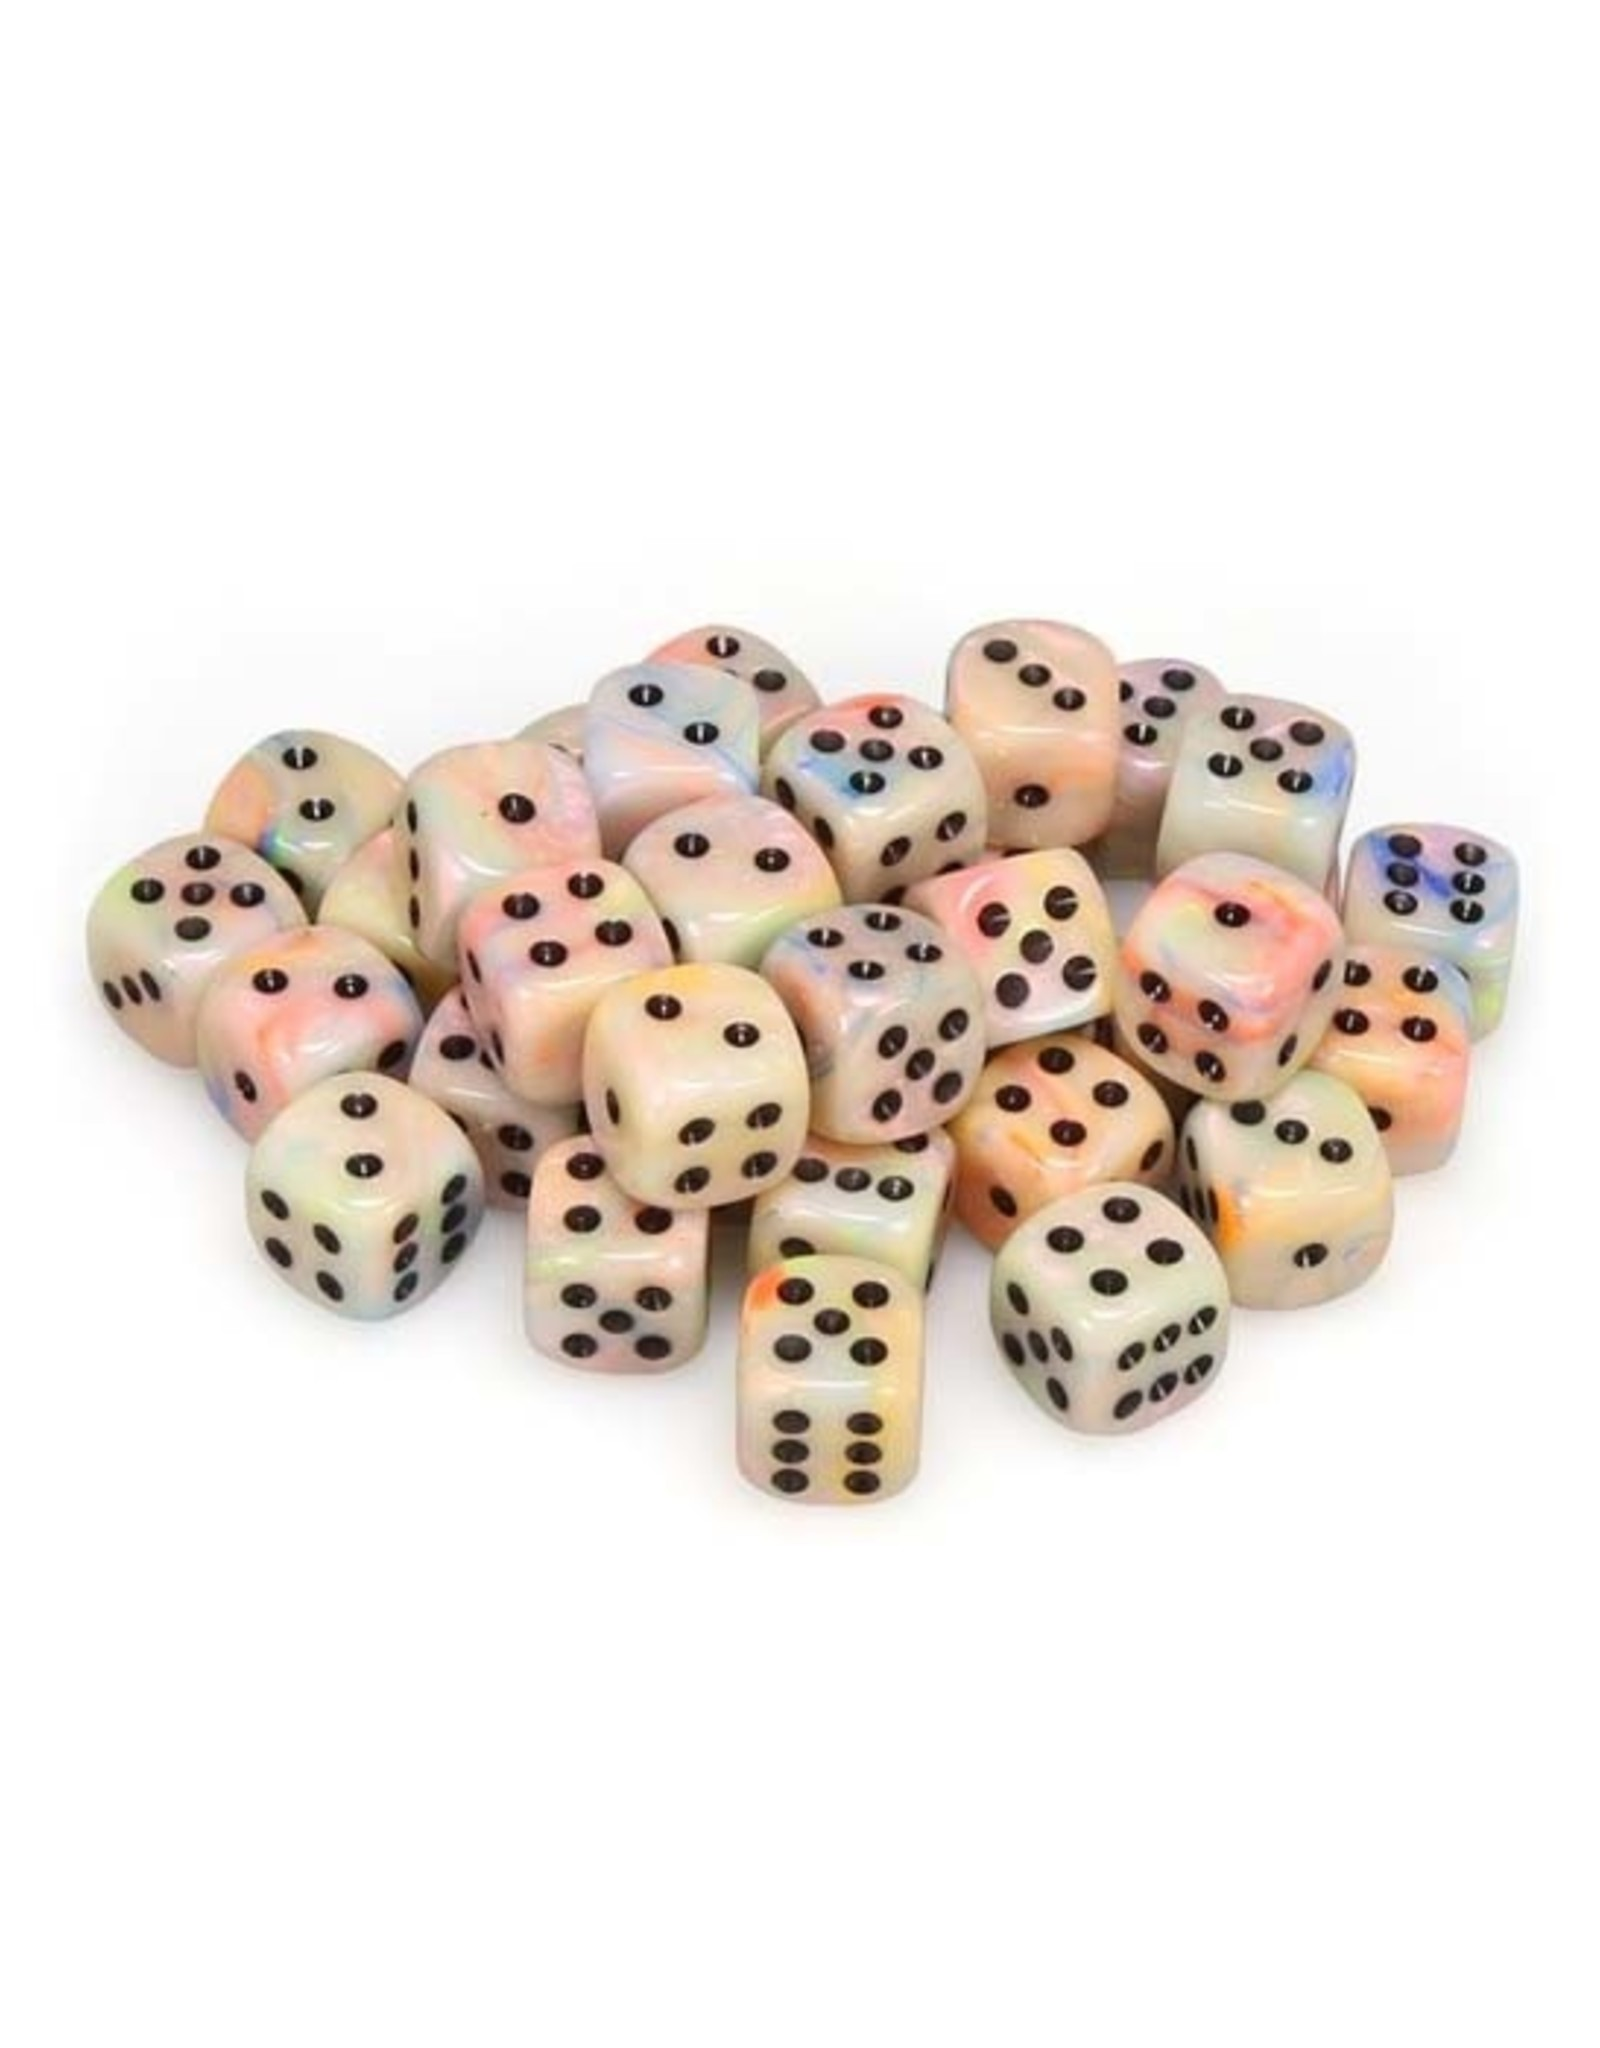 Chessex Chessex: 12mm D6 - Festive - Circus w/ Black